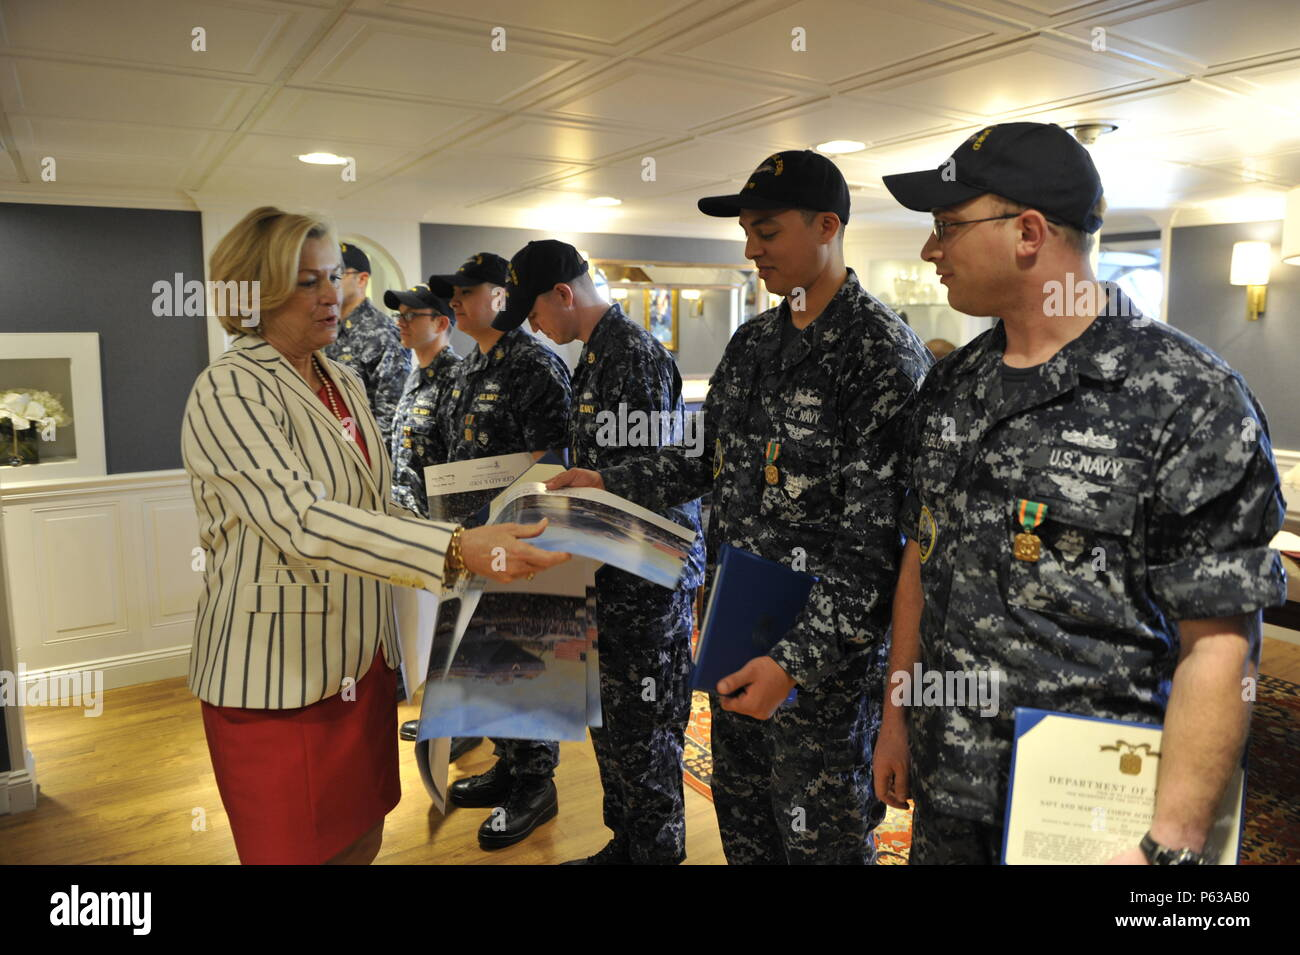 NEWPORT NEWS, Va., (April 8, 2016) Susan Ford Bales, ship sponsor, presents autographed photos of the ship to Sailors assigned to Pre-Commissioning Unit Gerald R. Ford's (CVN 78) Reactor department.  Ford is the first of a new class of aircraft carriers currently under construction by Huntington Ingalls Newport News Shipbuilding. (U.S. Navy photo by Mass Communication Specialist 3rd Class Matthew Fairchild/Released) - Stock Image